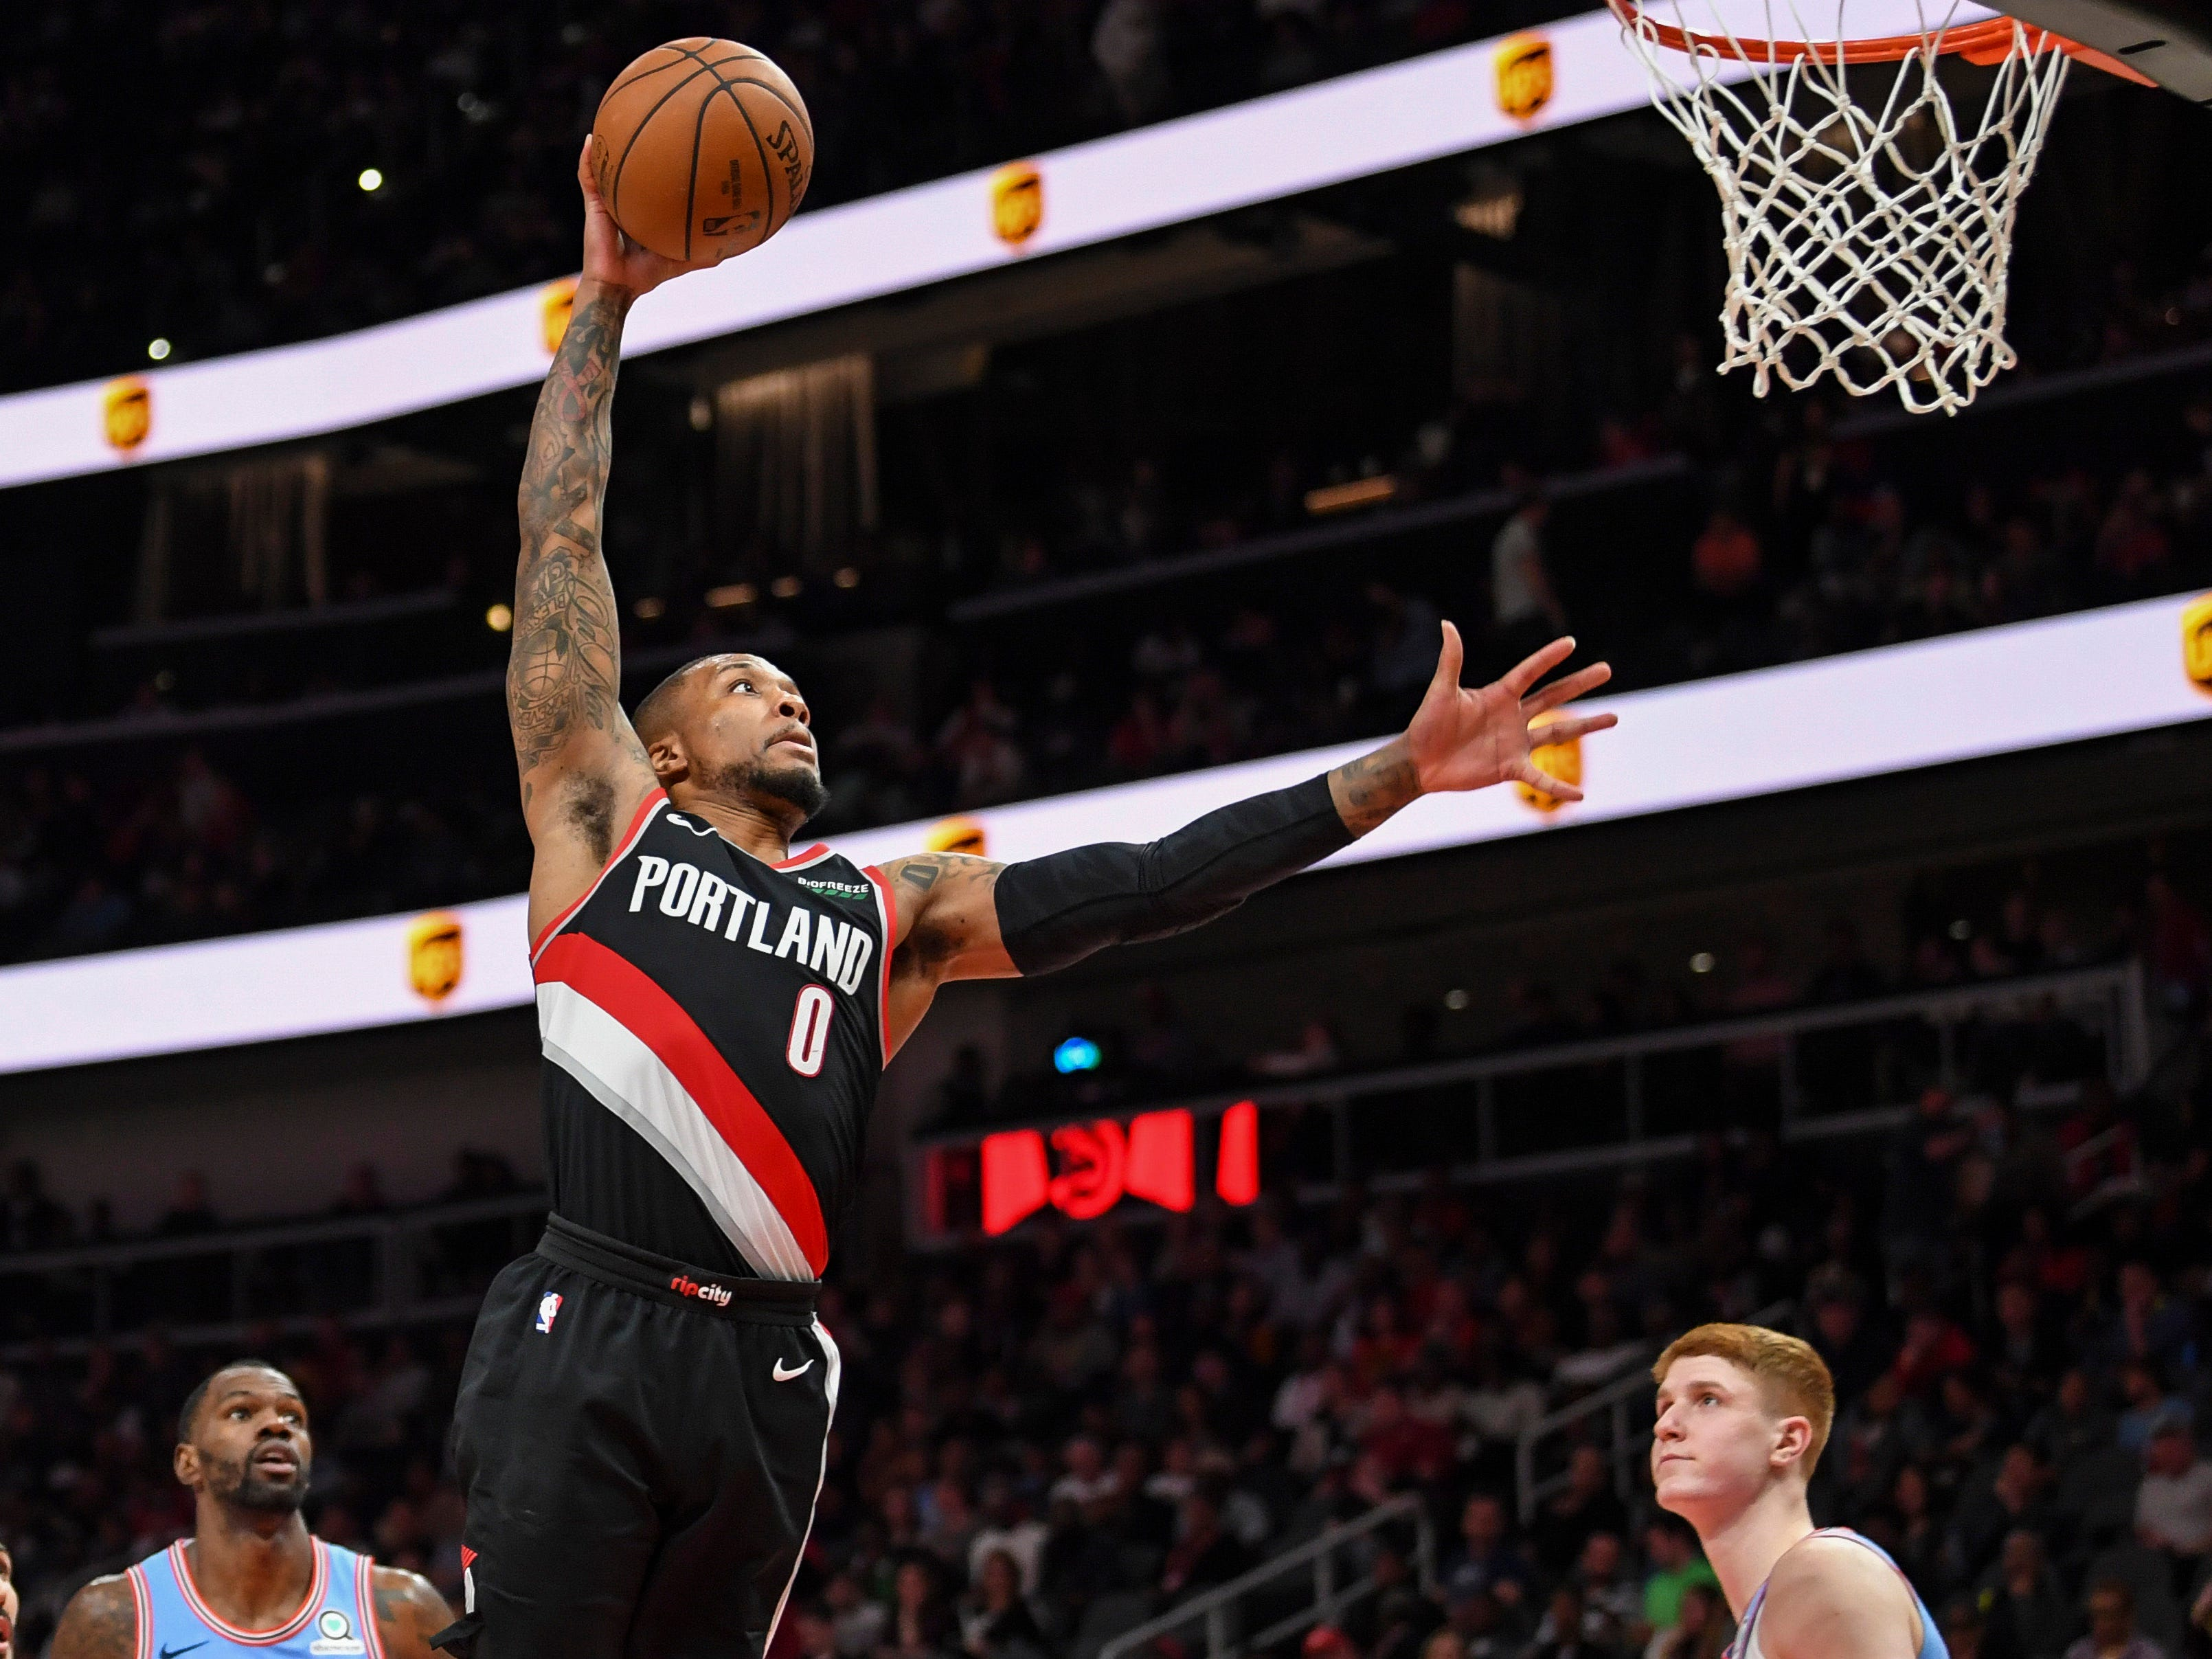 March 29: Trail Blazers guard Damian Lillard rises up for the one-handed slam during the second half against he Hawks.